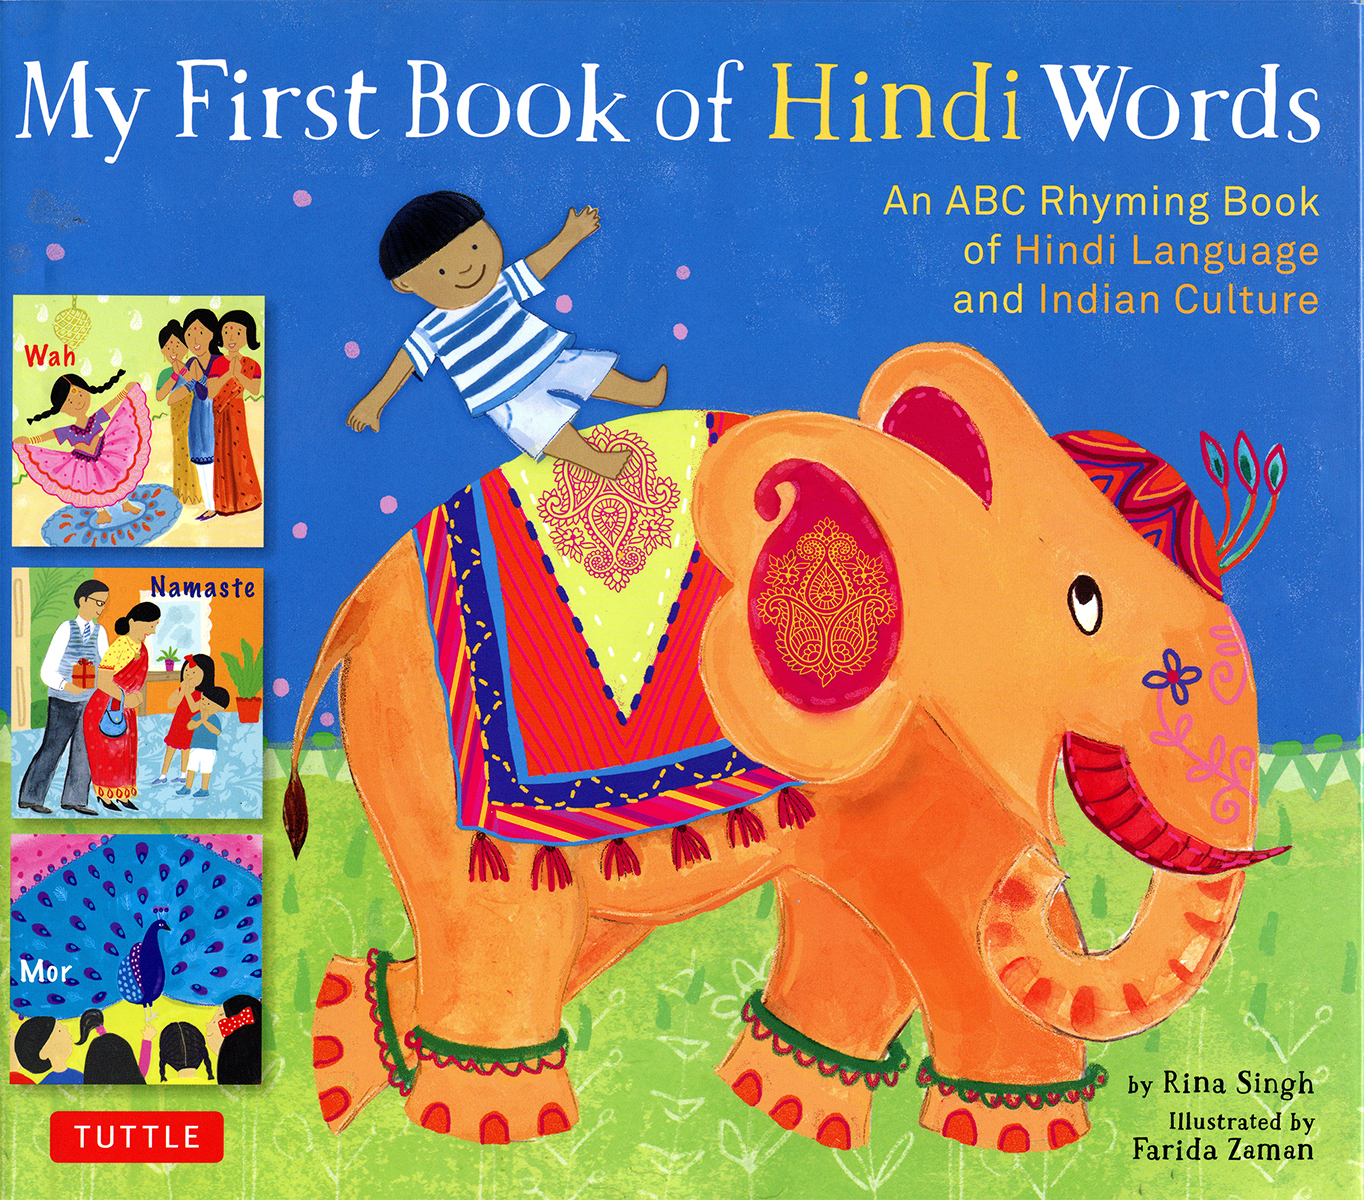 1st bk Hindi Words.jpg